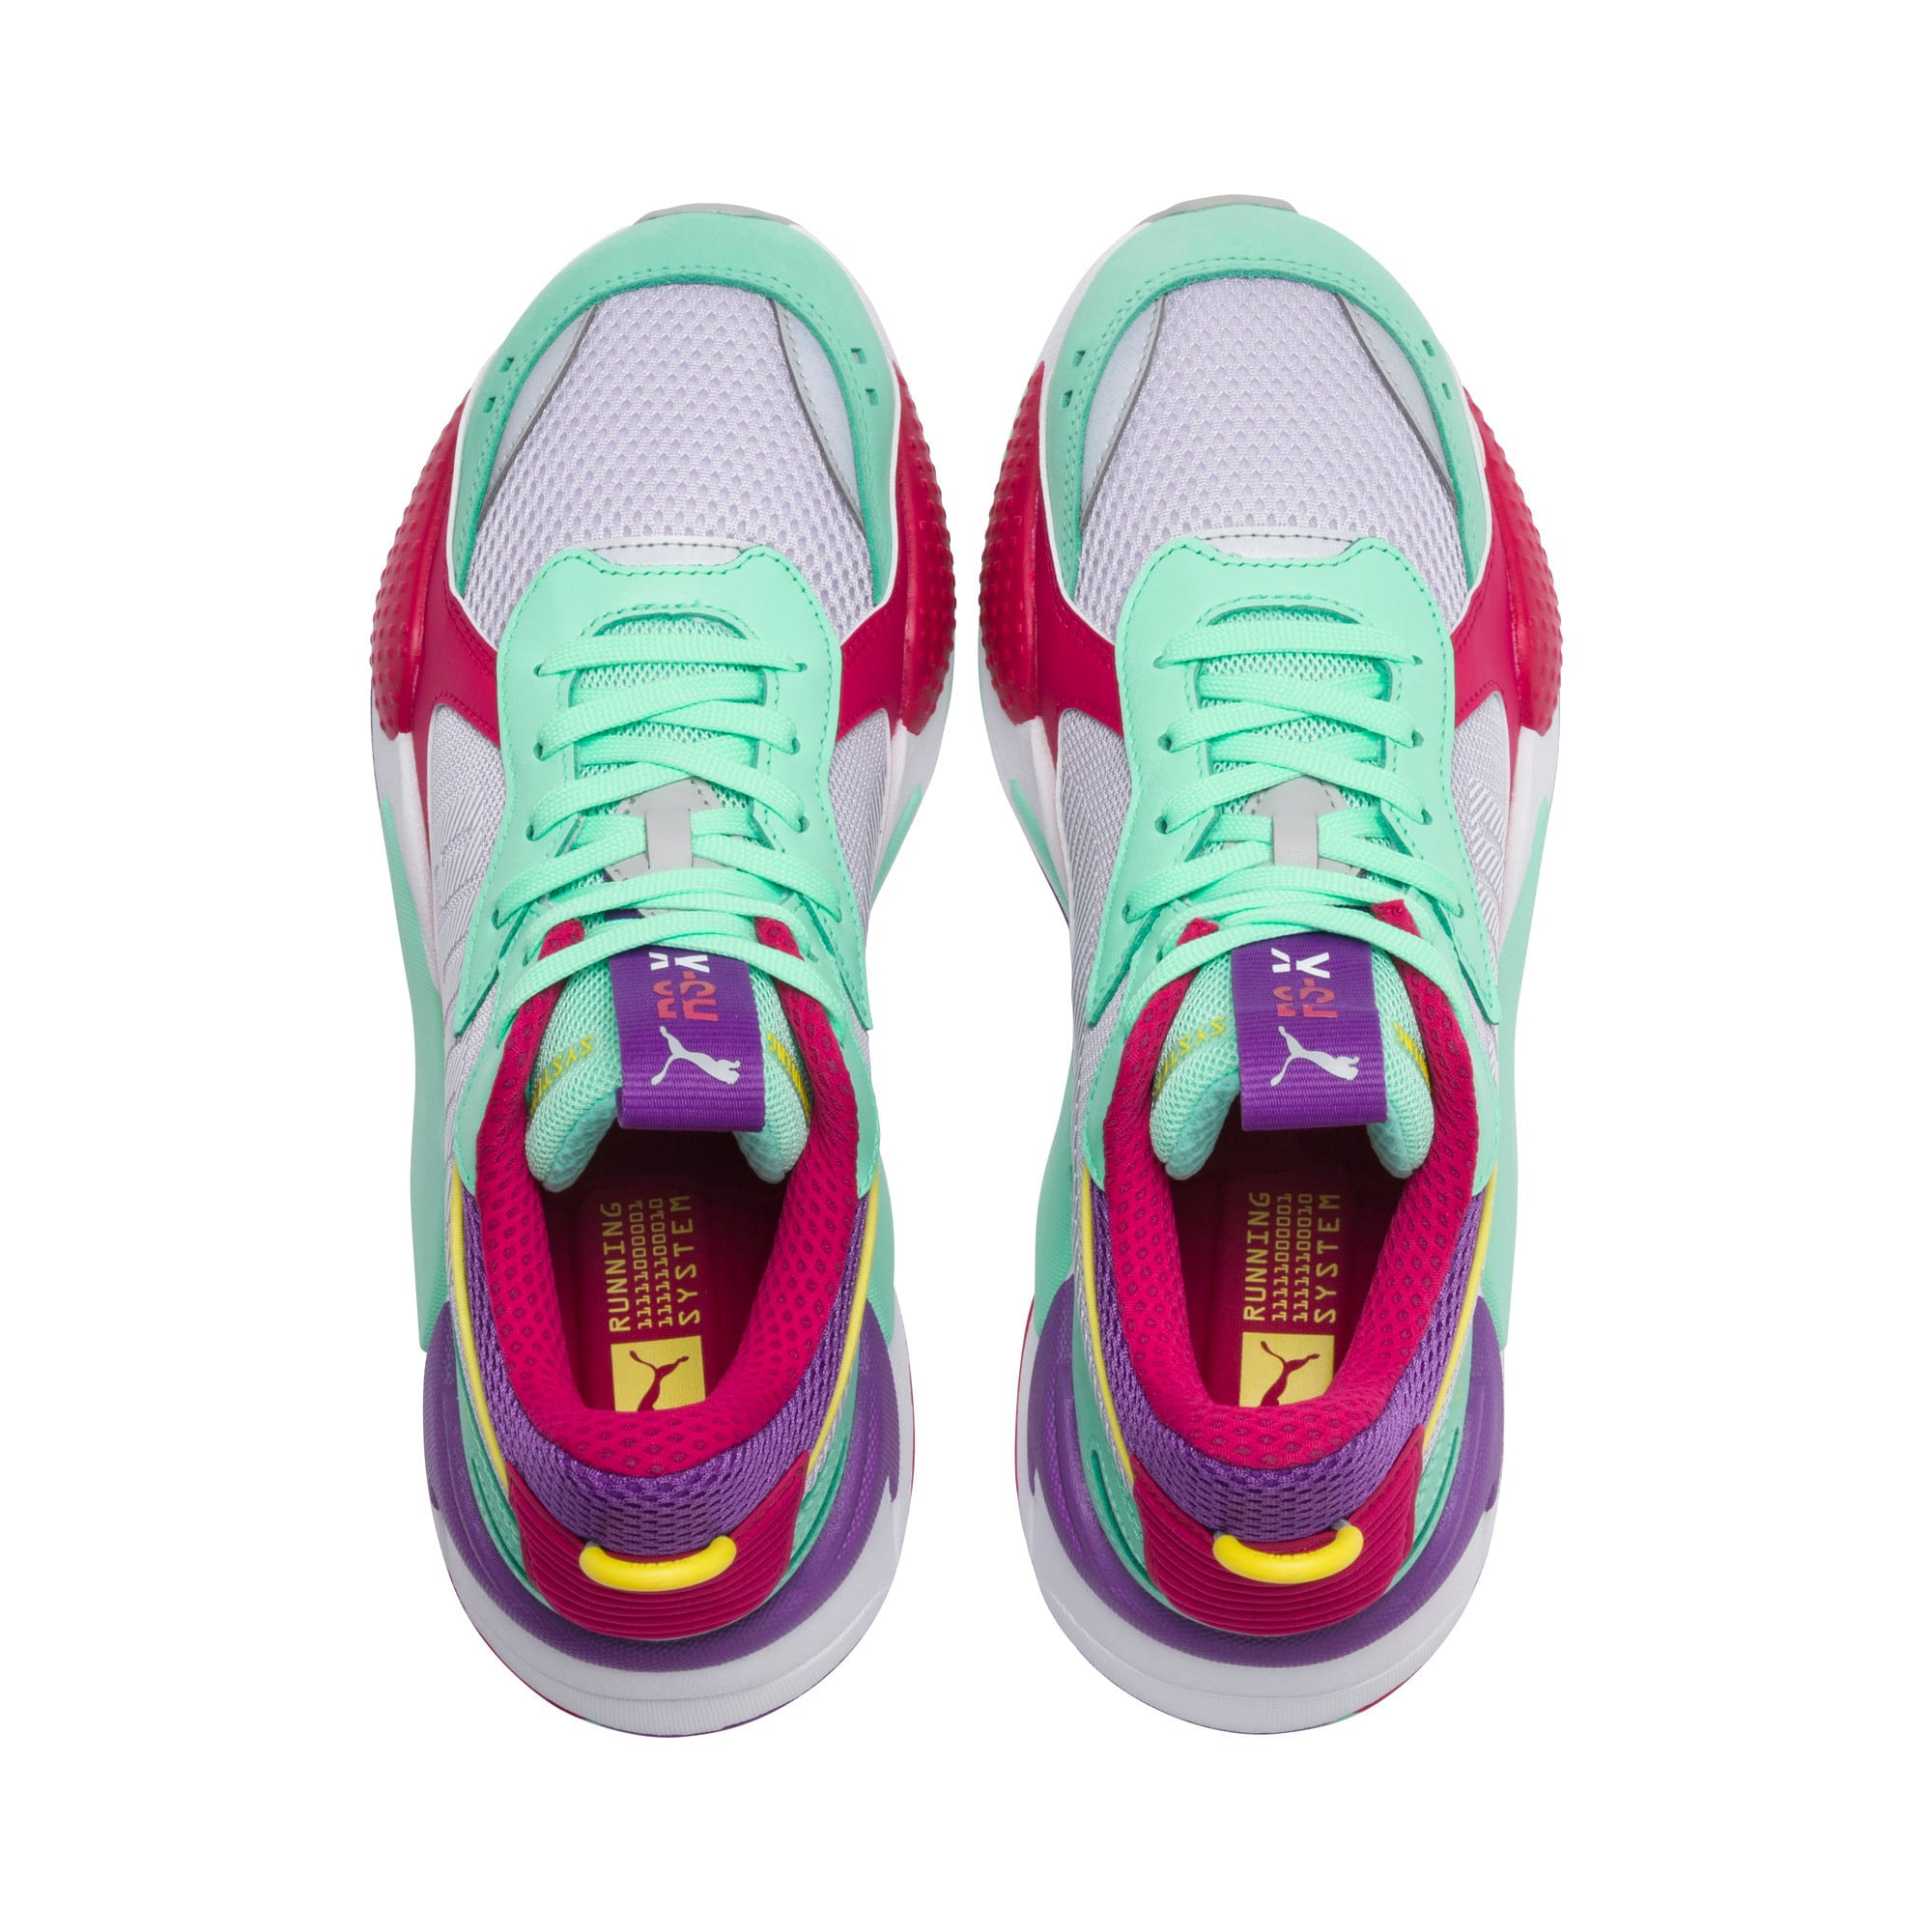 Thumbnail 6 of RS-X Bold Trainers, PurHeather-GrGlimmer-LPotion, medium